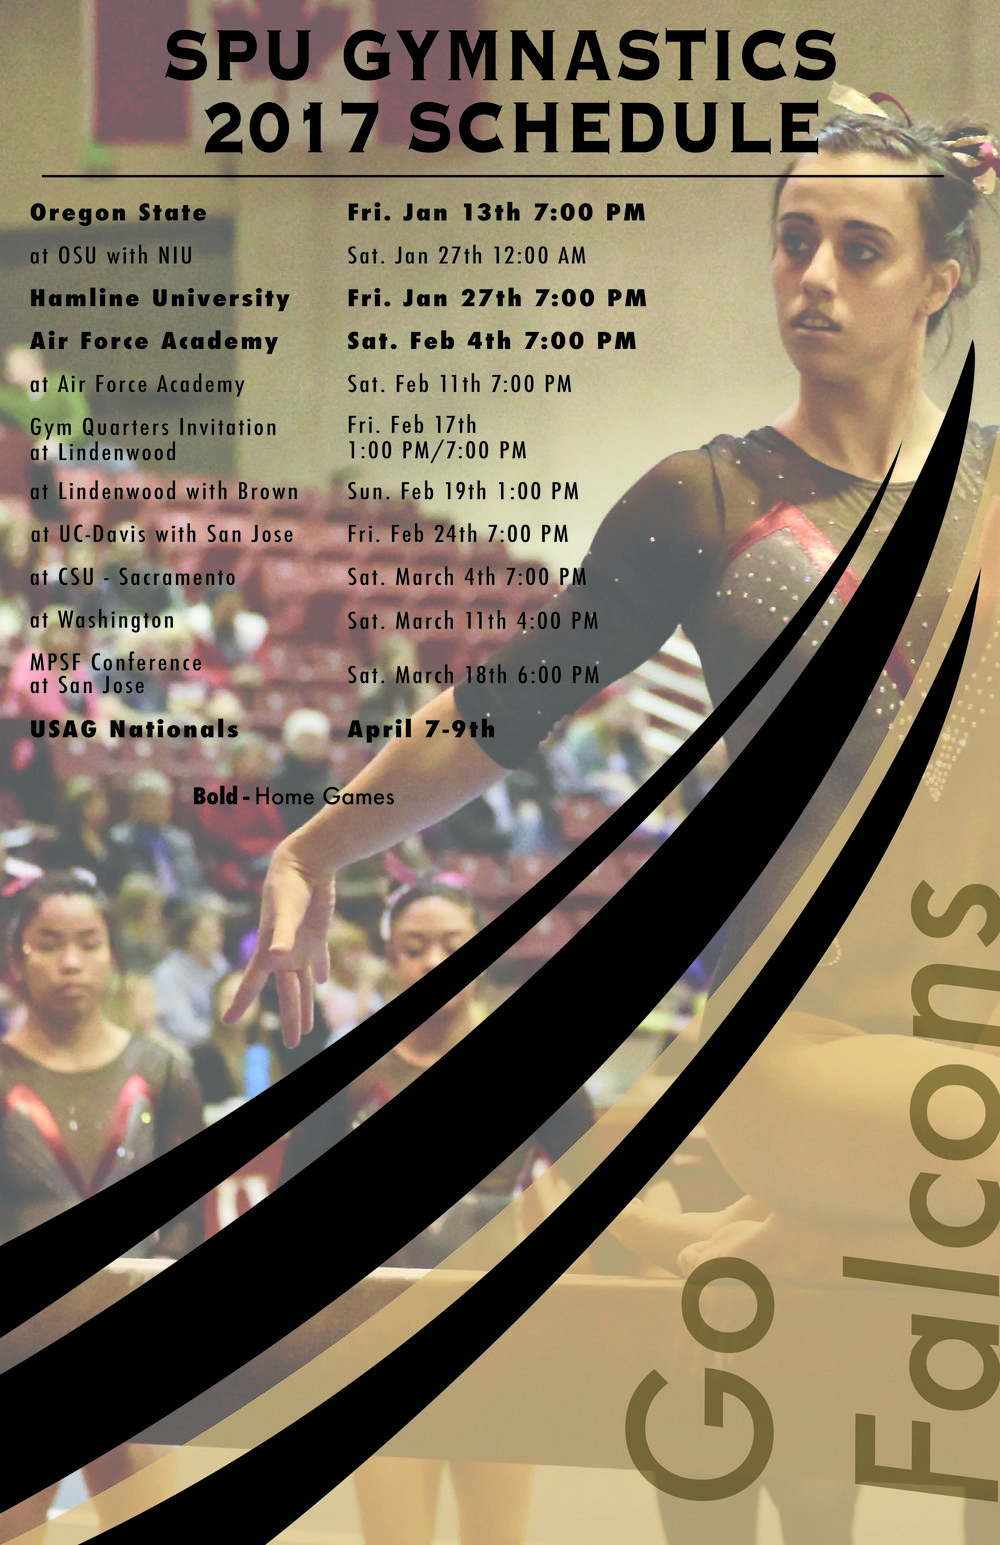 Womens Gymnastics Schedule final-01.jpg